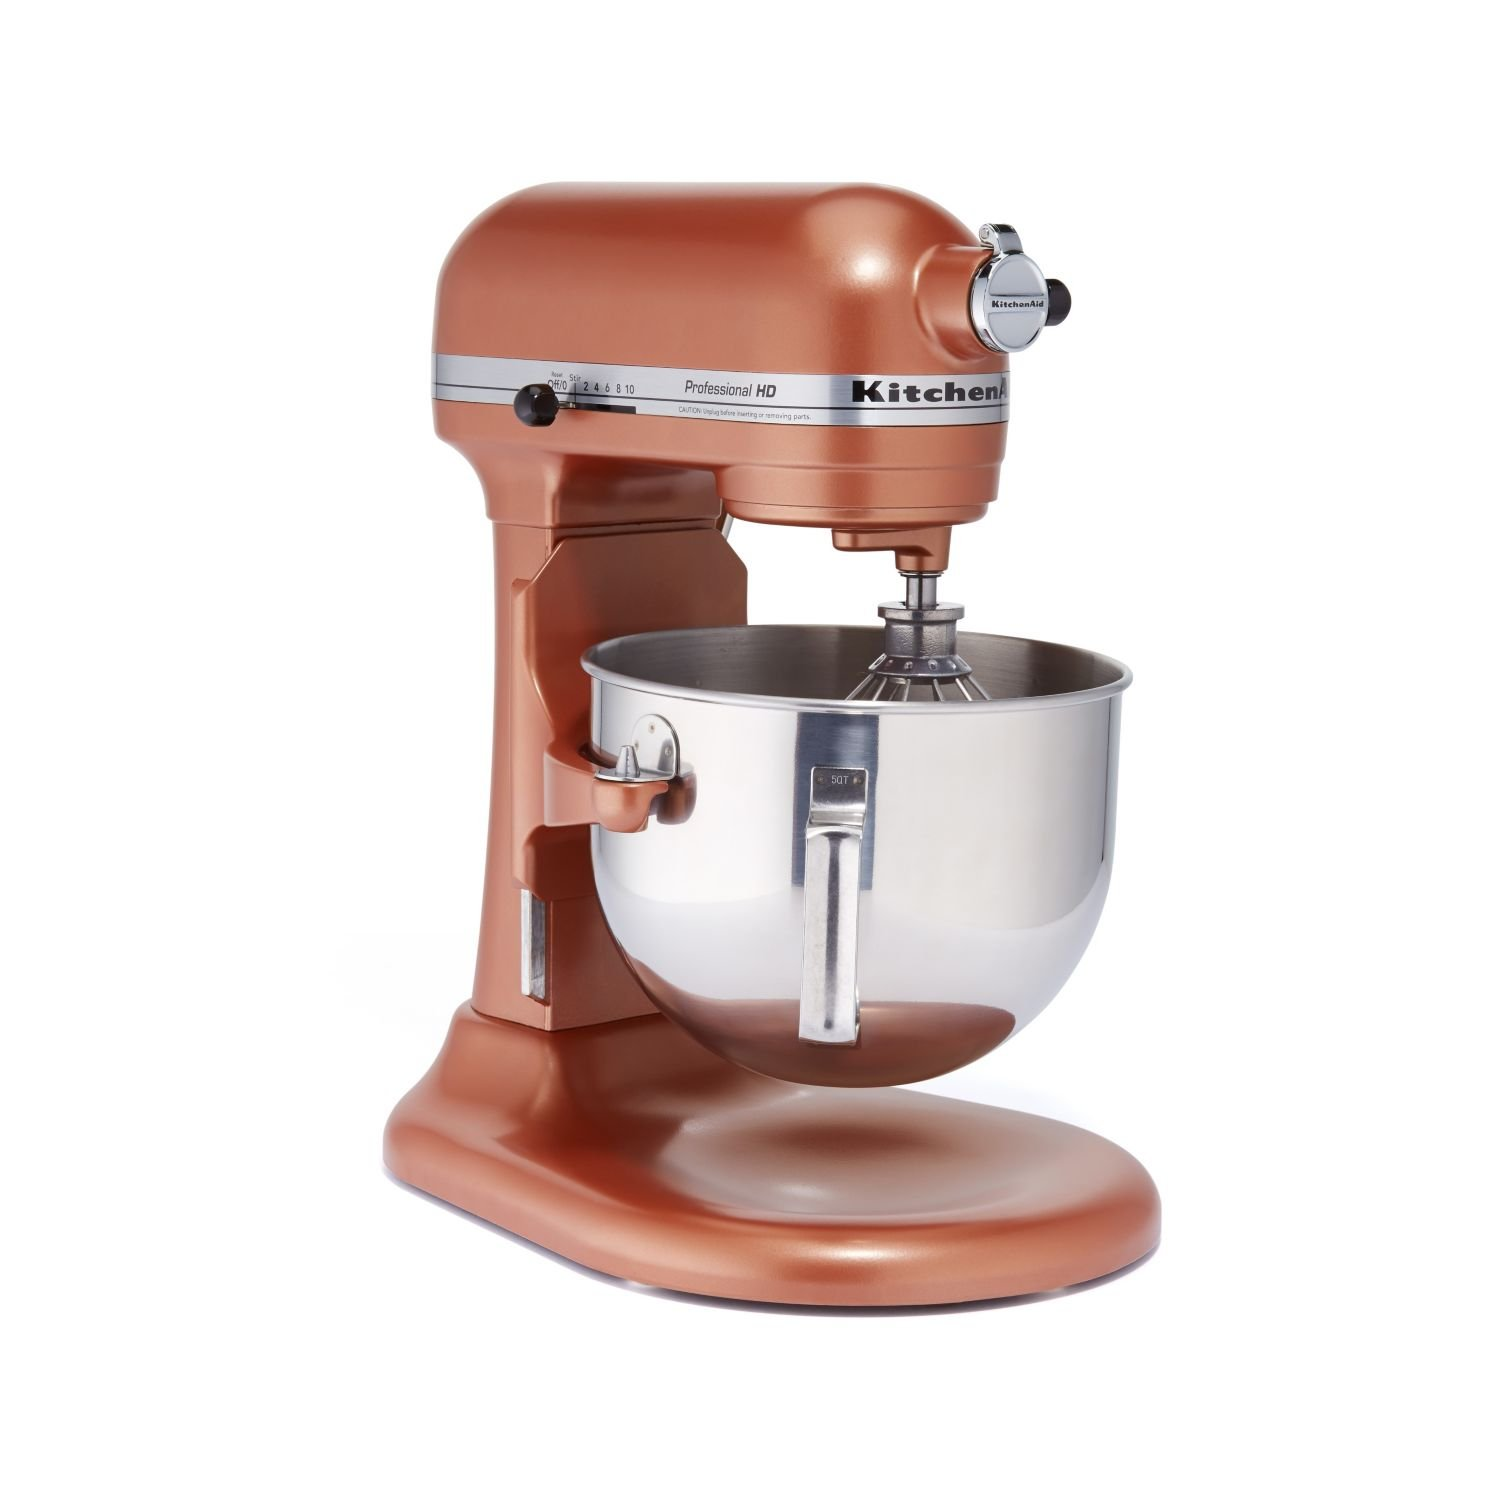 KitchenAid Professional HD Stand Mixer Copper Pearl